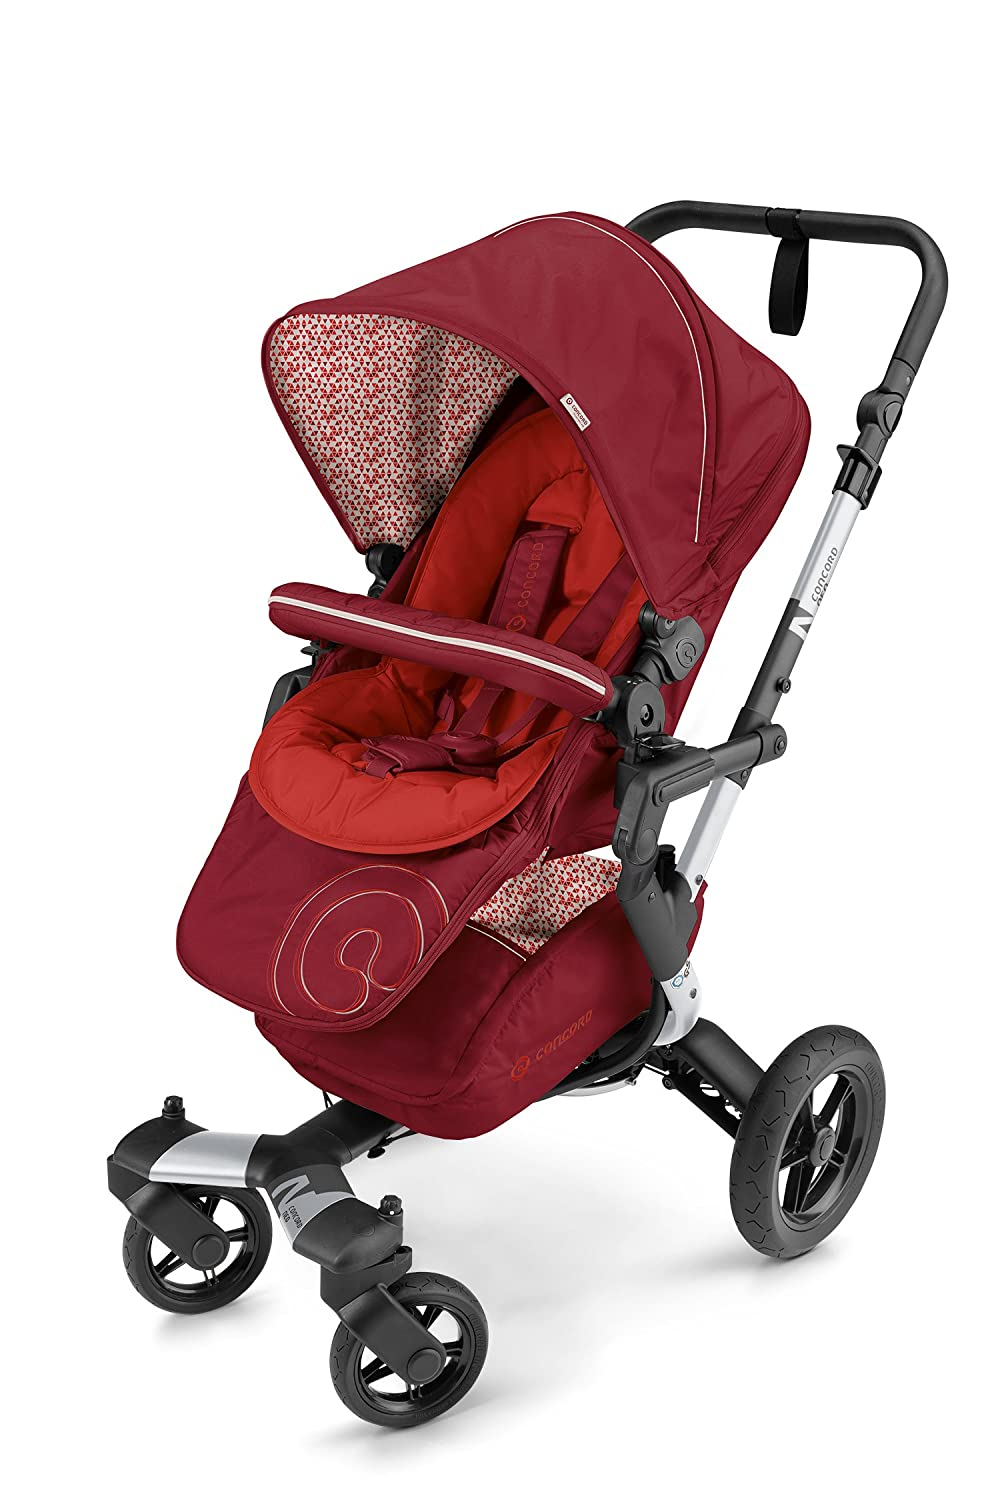 Concord Buggy Neo Tomato Red Kollektion 2016